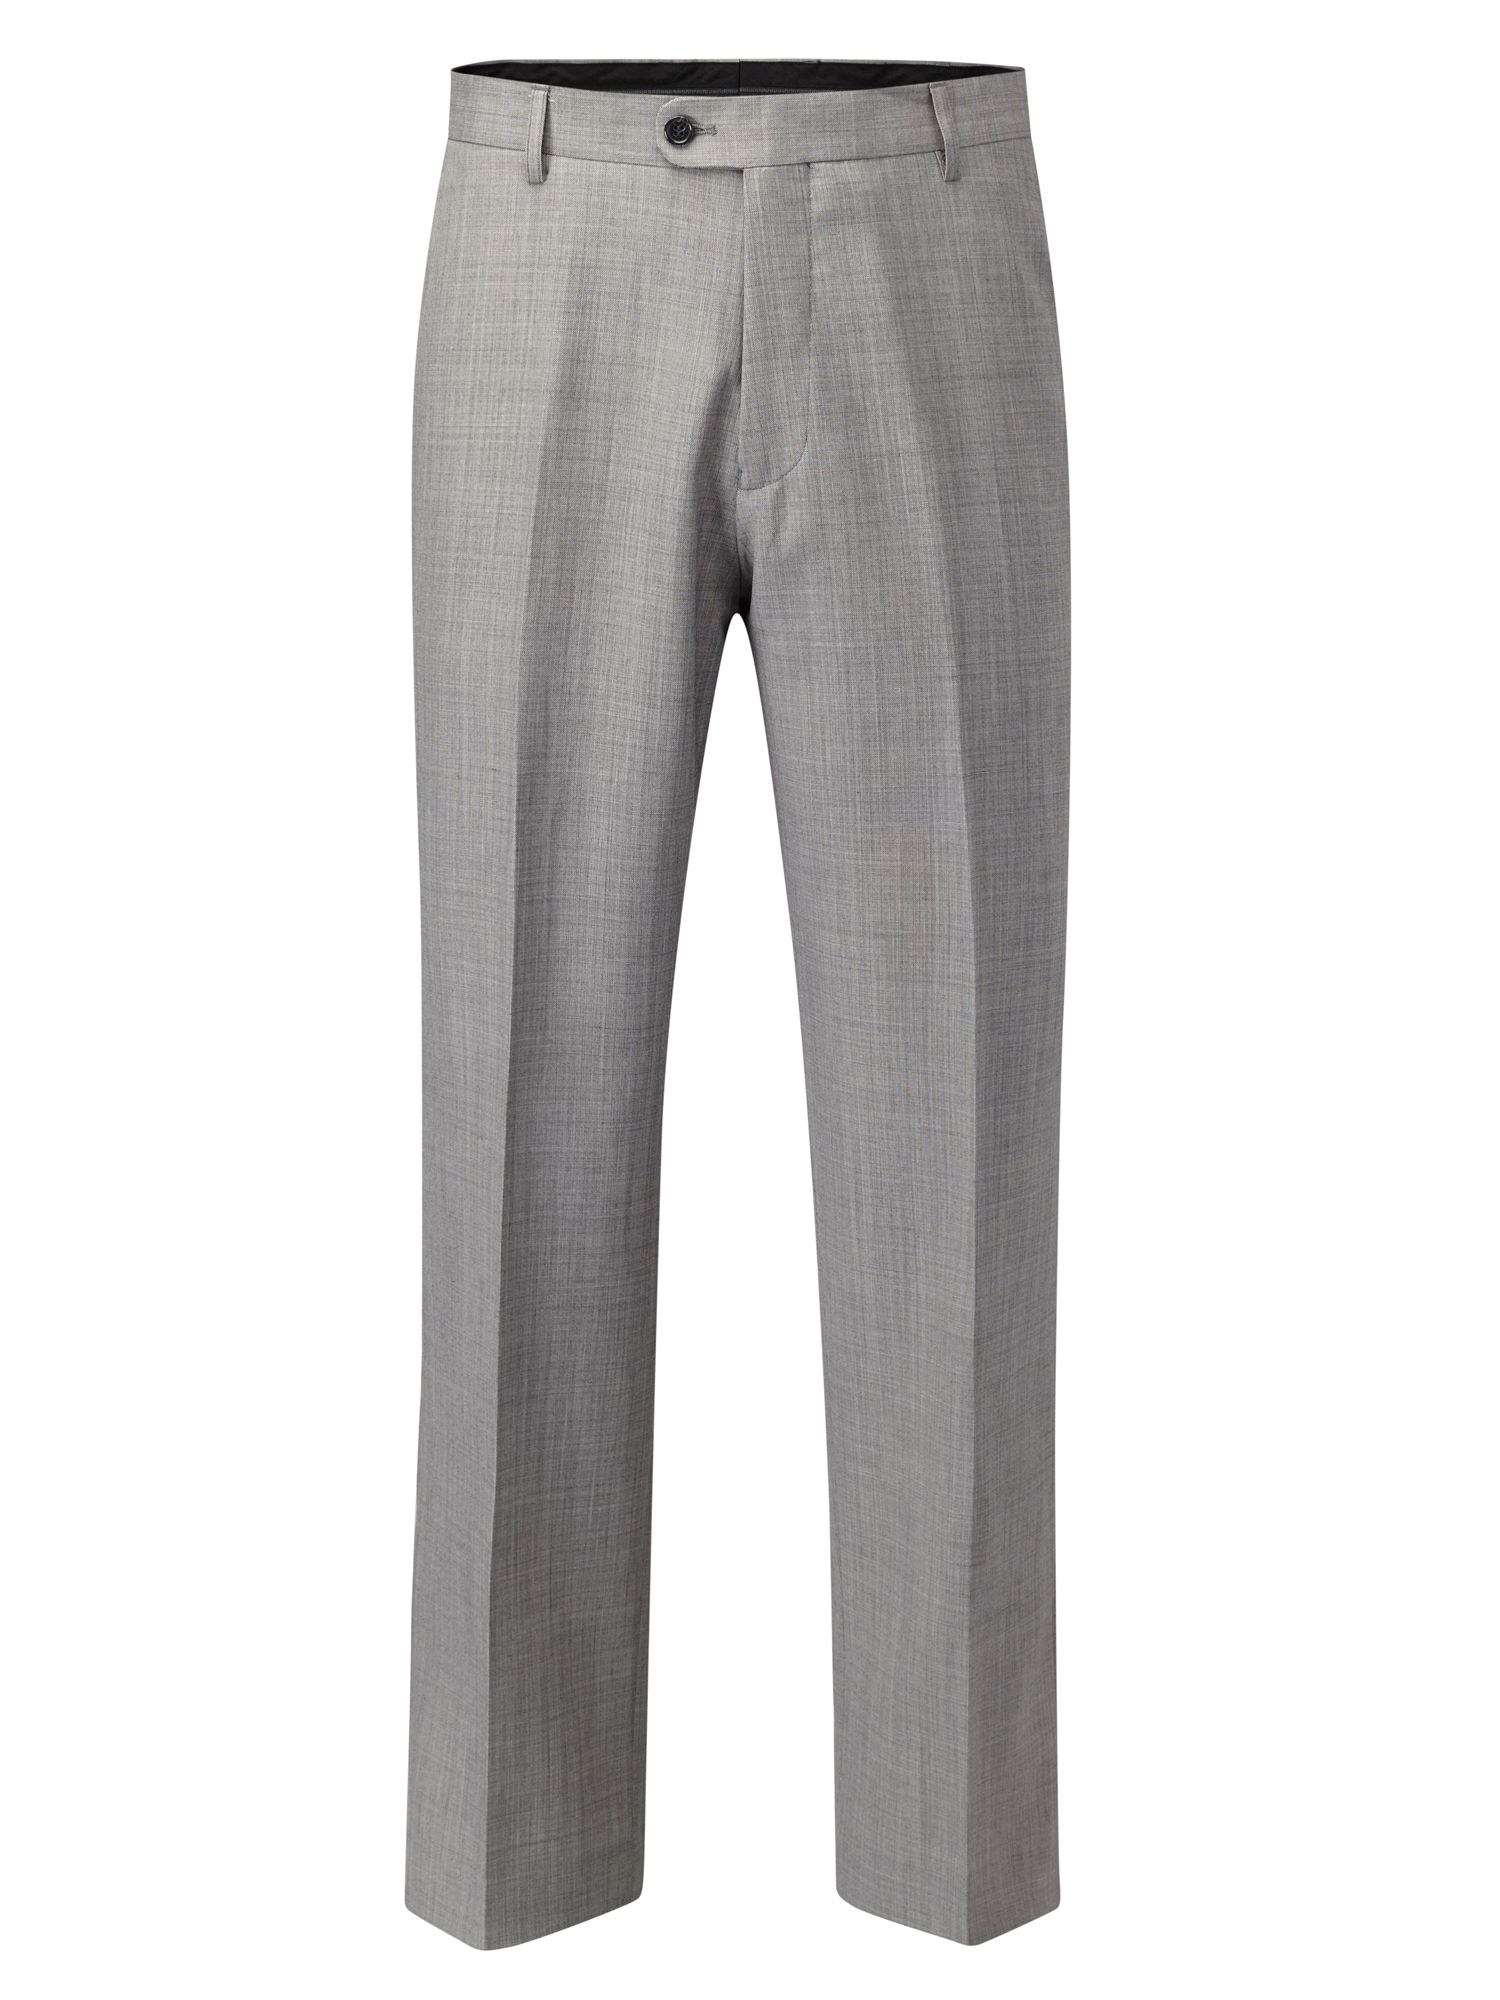 1940s Style Men's Pants and Trousers Mens Skopes Palmer Plain Classic Fit Suit Trousers £44.00 AT vintagedancer.com